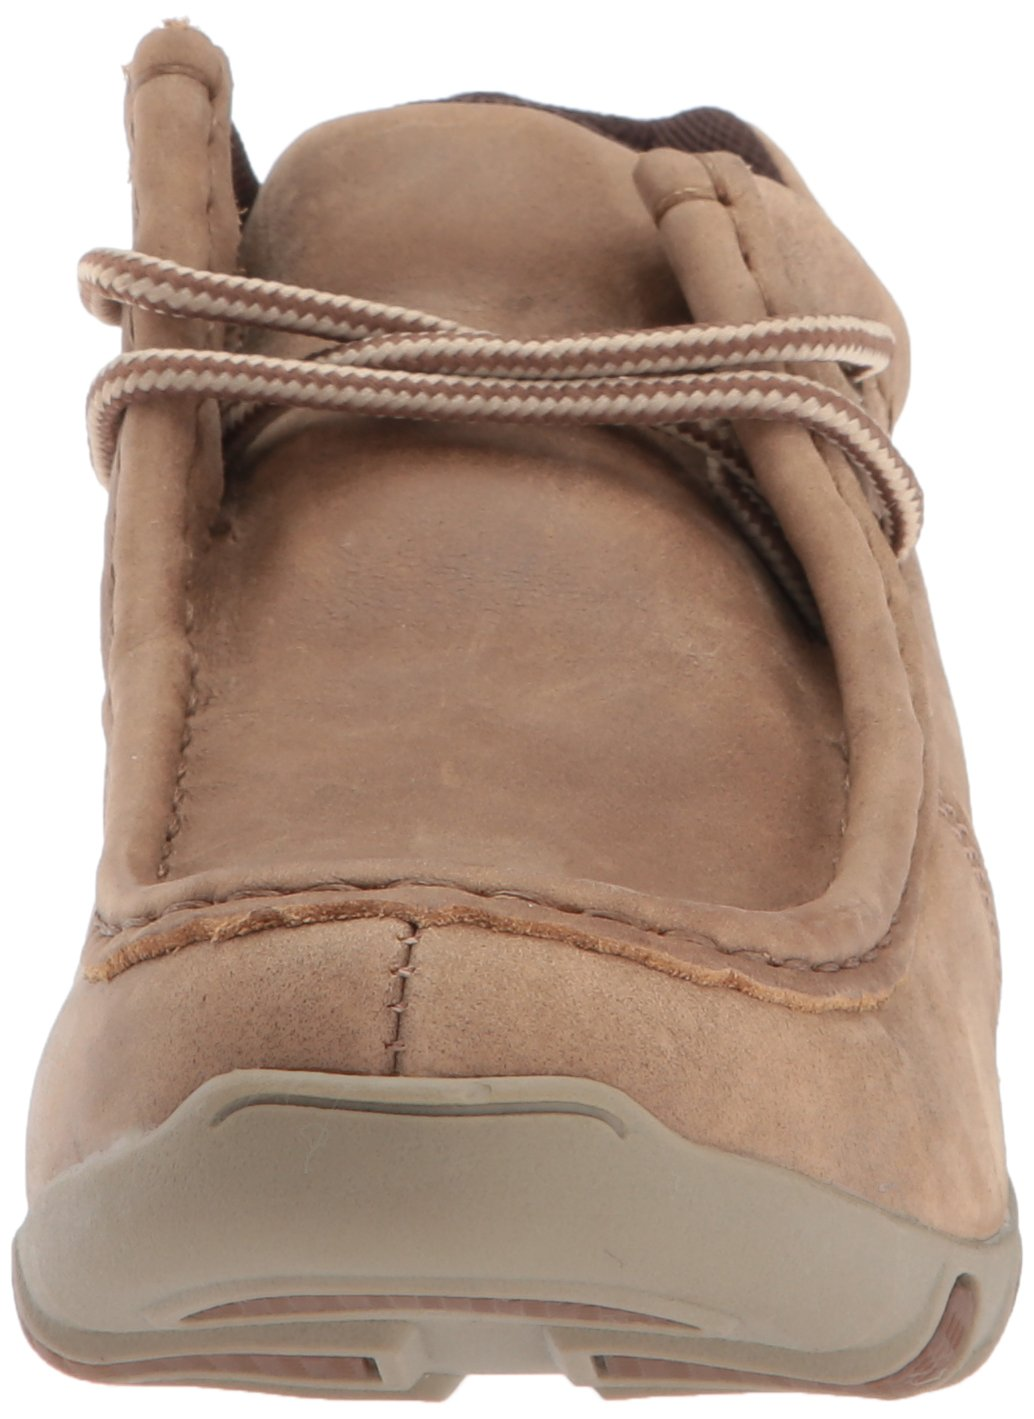 ROPER Boys' Bode, tan 10 M US Little Kid by ROPER (Image #4)